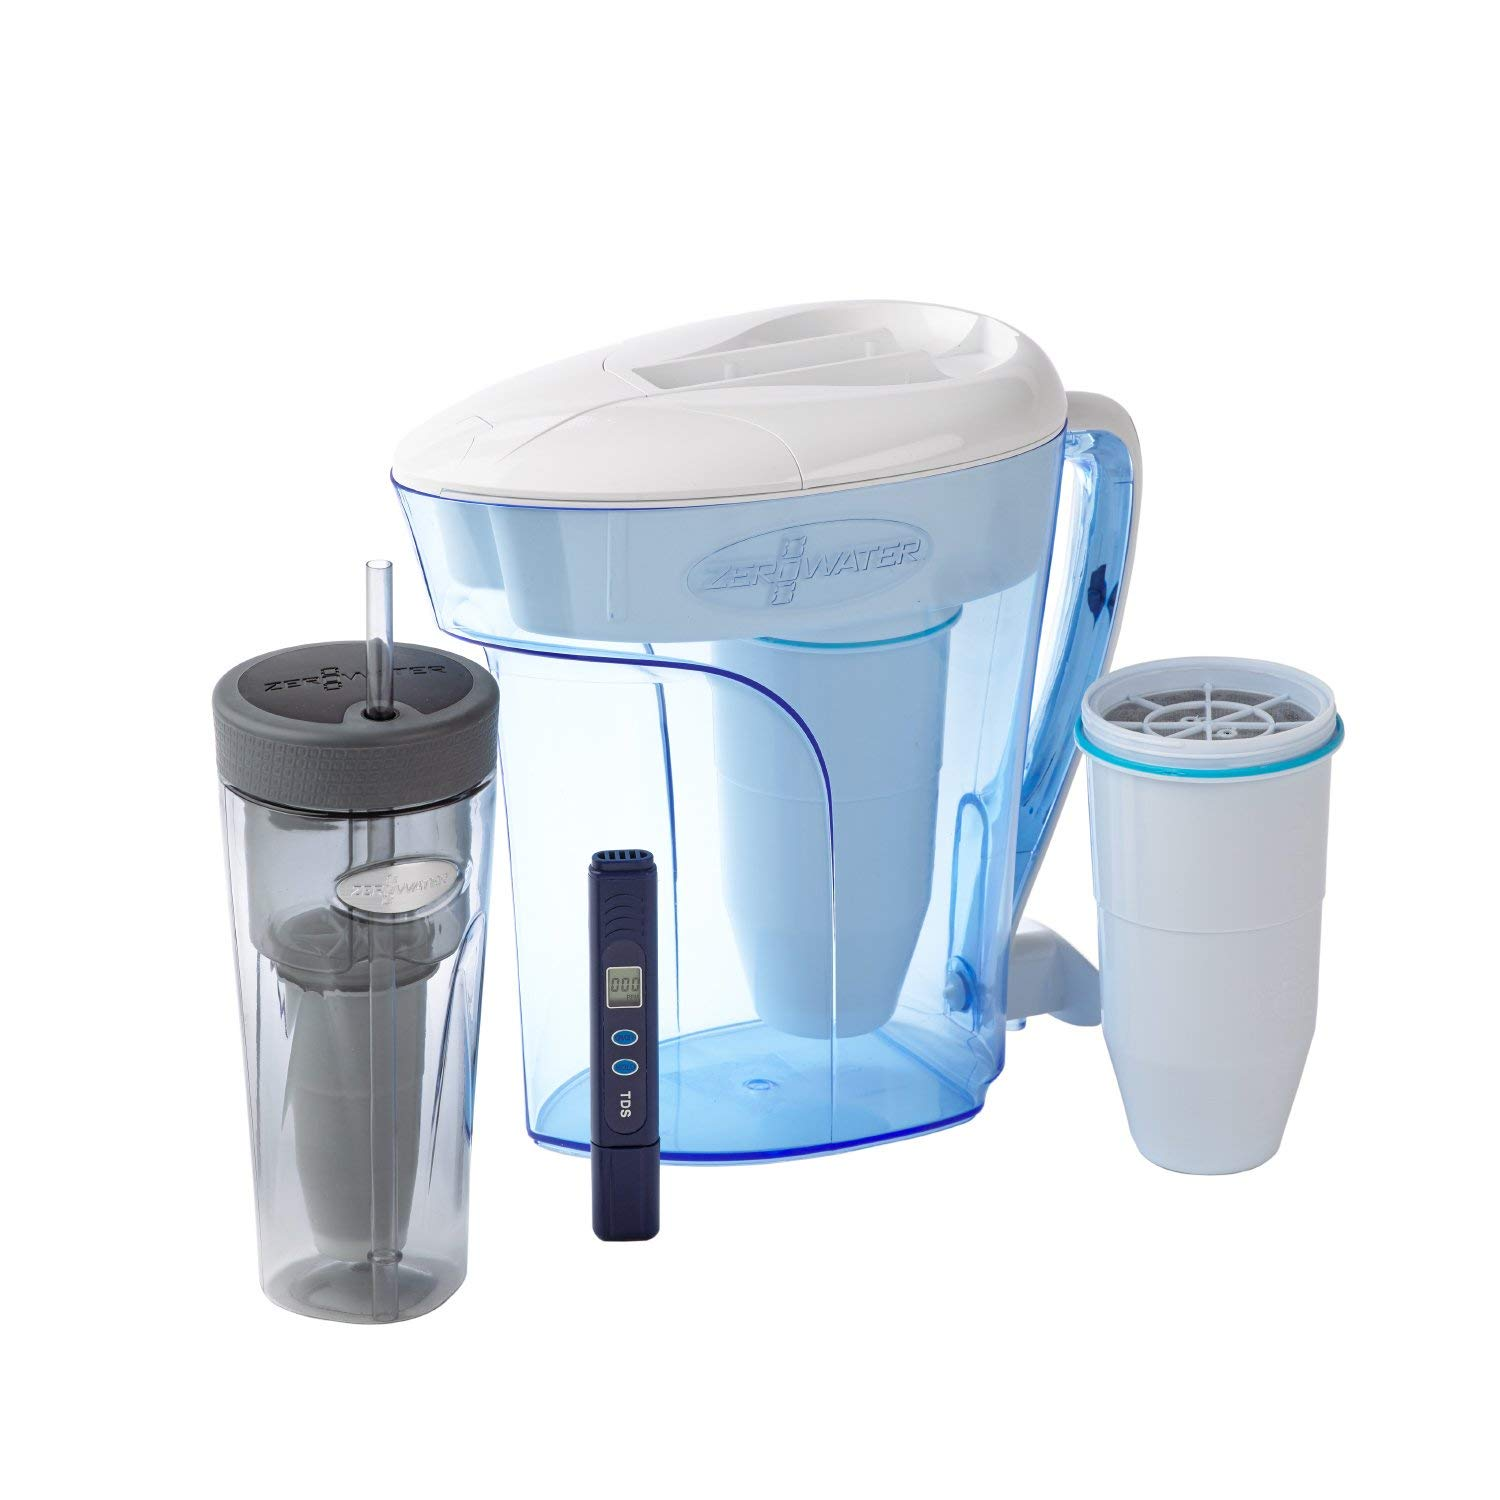 ZeroWater Combo Hydration Kit | 2 8 Litre Water Jug with Filter, 760ml  Portable Travel & Sports Bottle & Spare Ion Exchange Water Filter, Value  Pack -